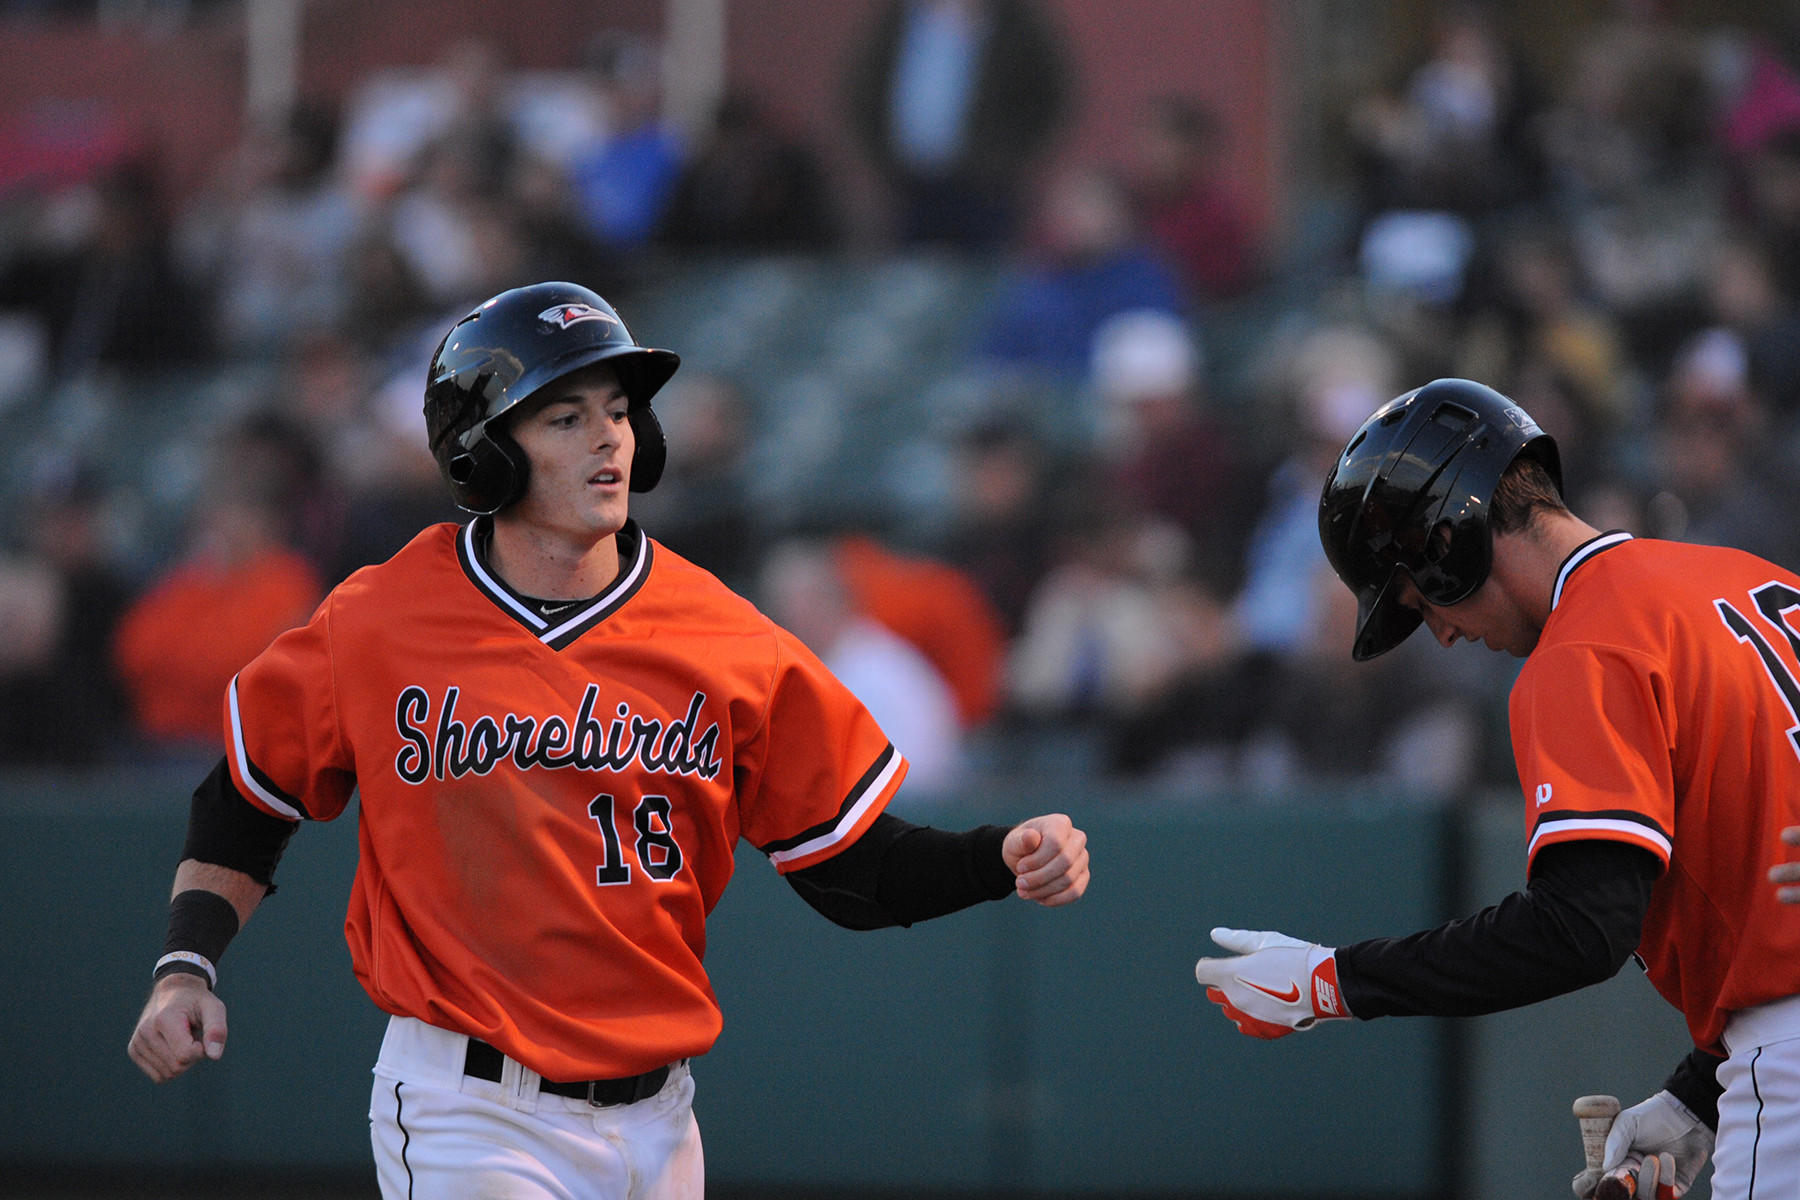 Orioles minor leaguer Mike Yastrzemski has played his way into two promotions this year. After starting at Low-A Delmarva, he's now at Double-A Bowie.